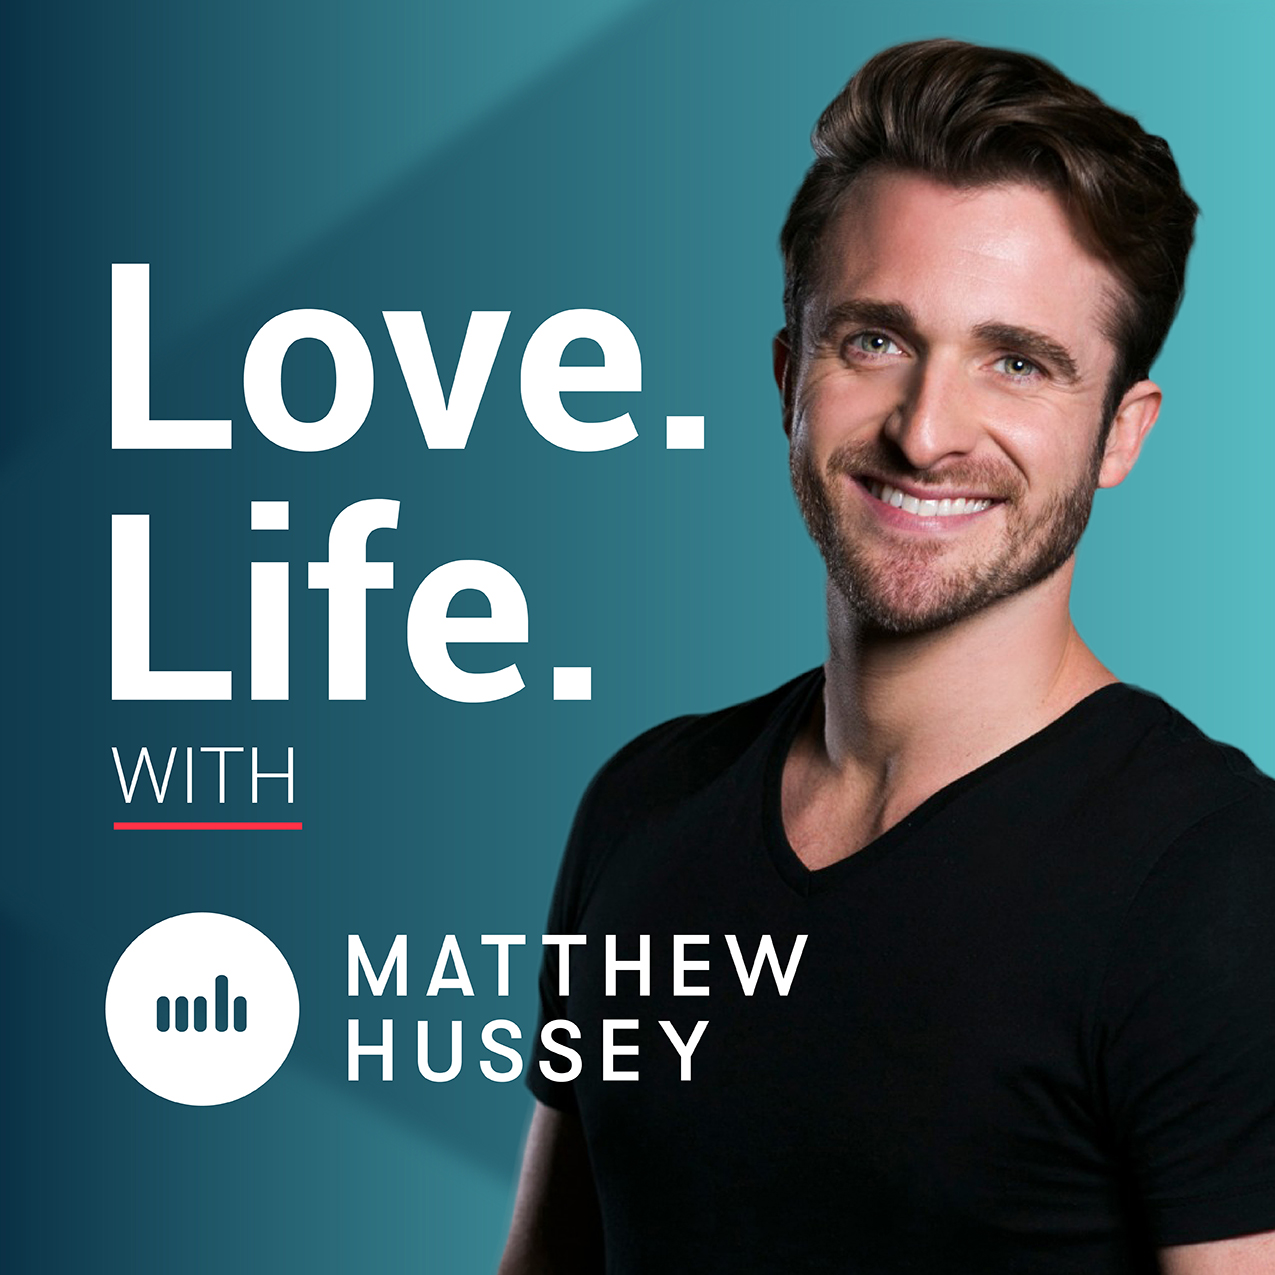 Conversation w/ Matt and Steve: Love addiction, Avoiding Red Flags, How To Set The Right Goals